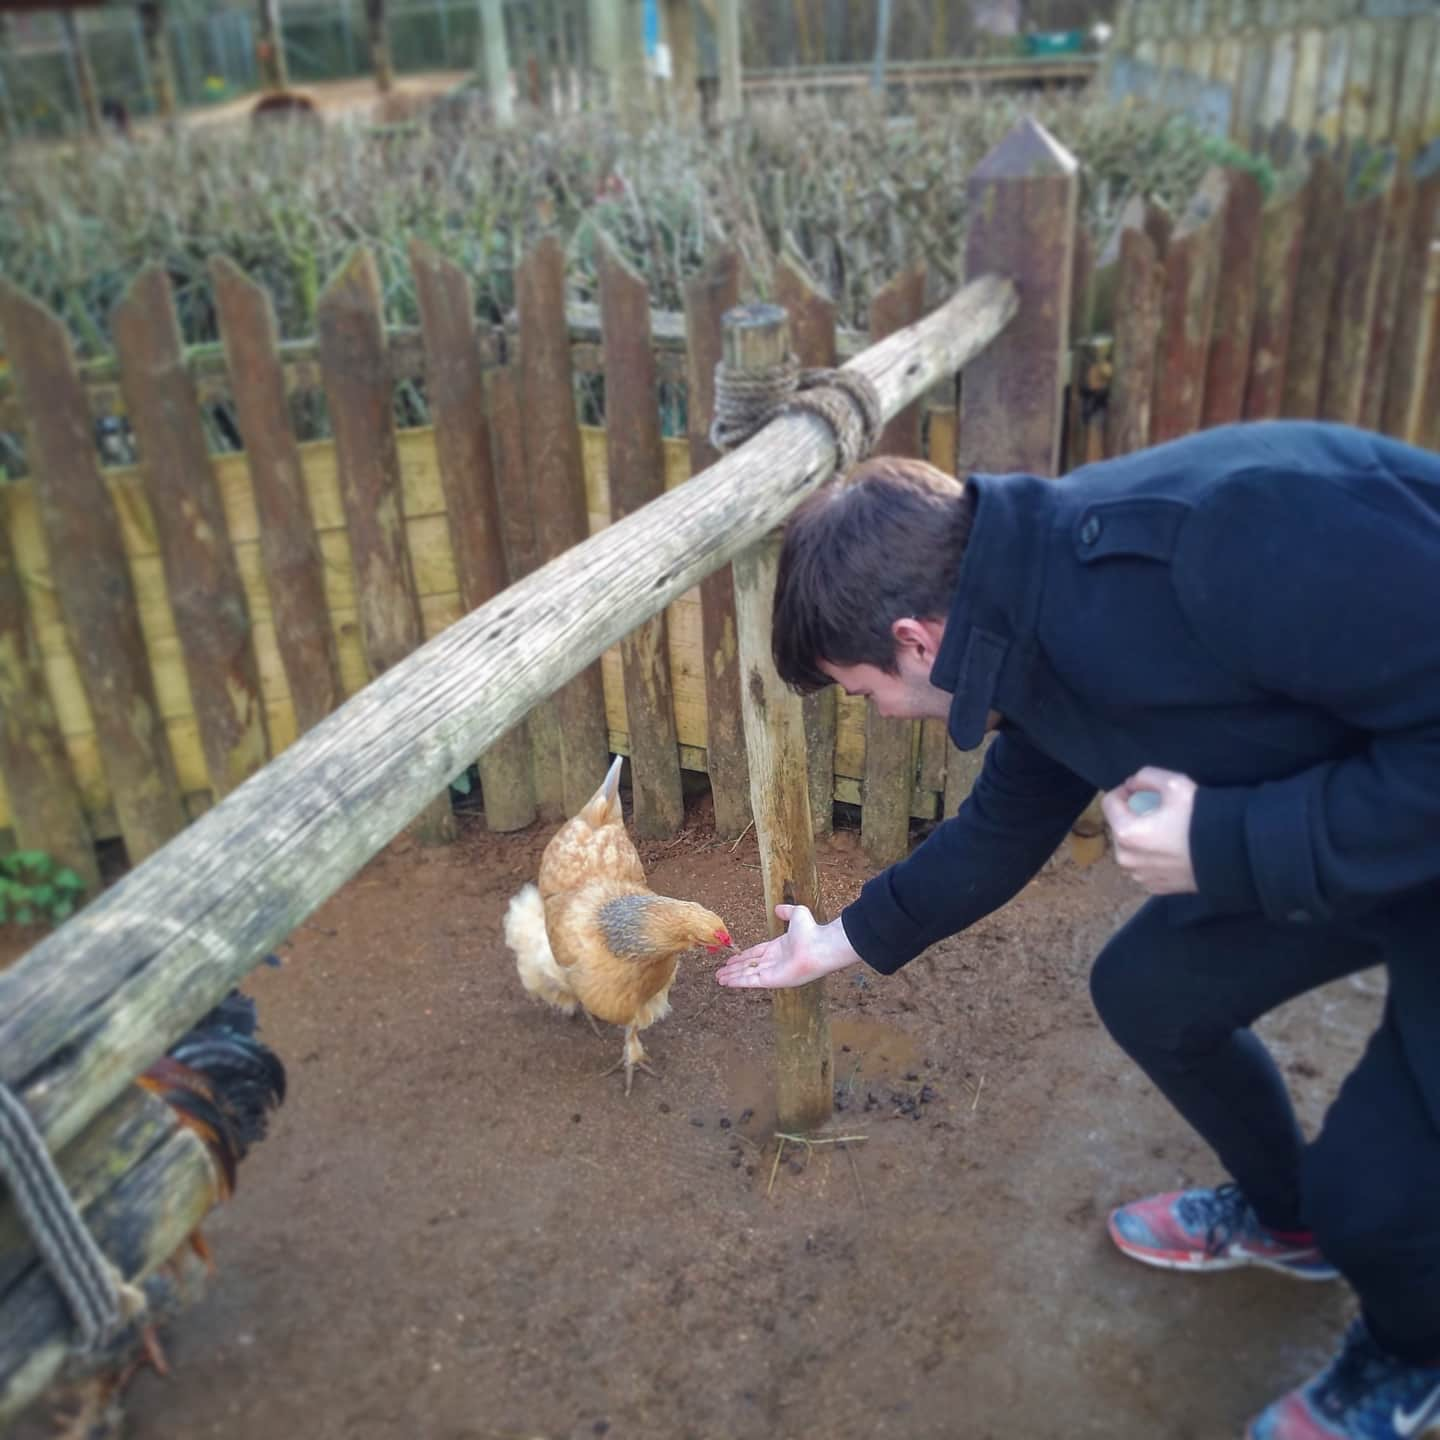 Feeding chickens at Colchester Zoo